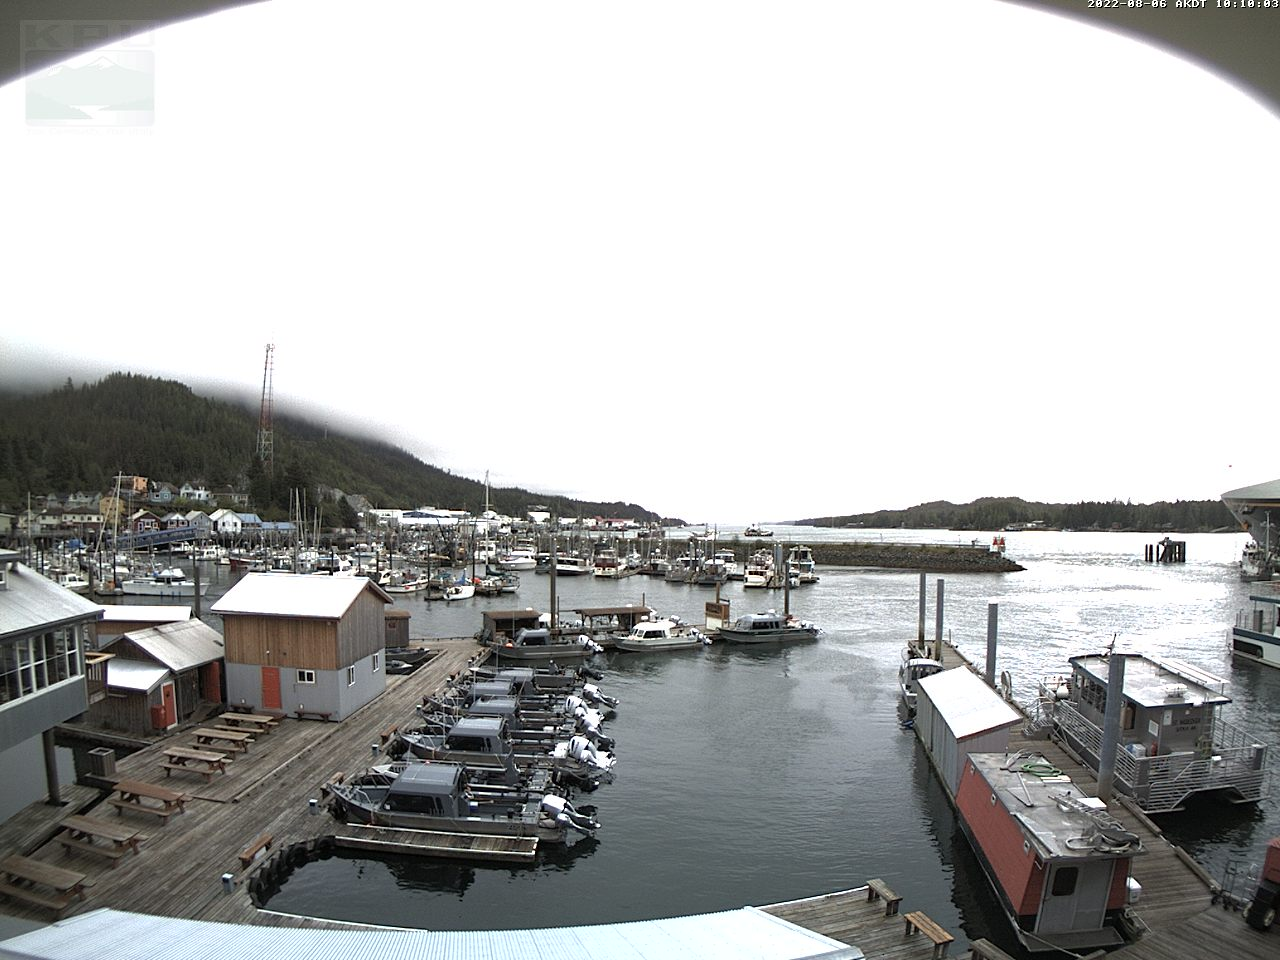 Ketchikan Webcam 5 looks towards the Ketchikan Airport